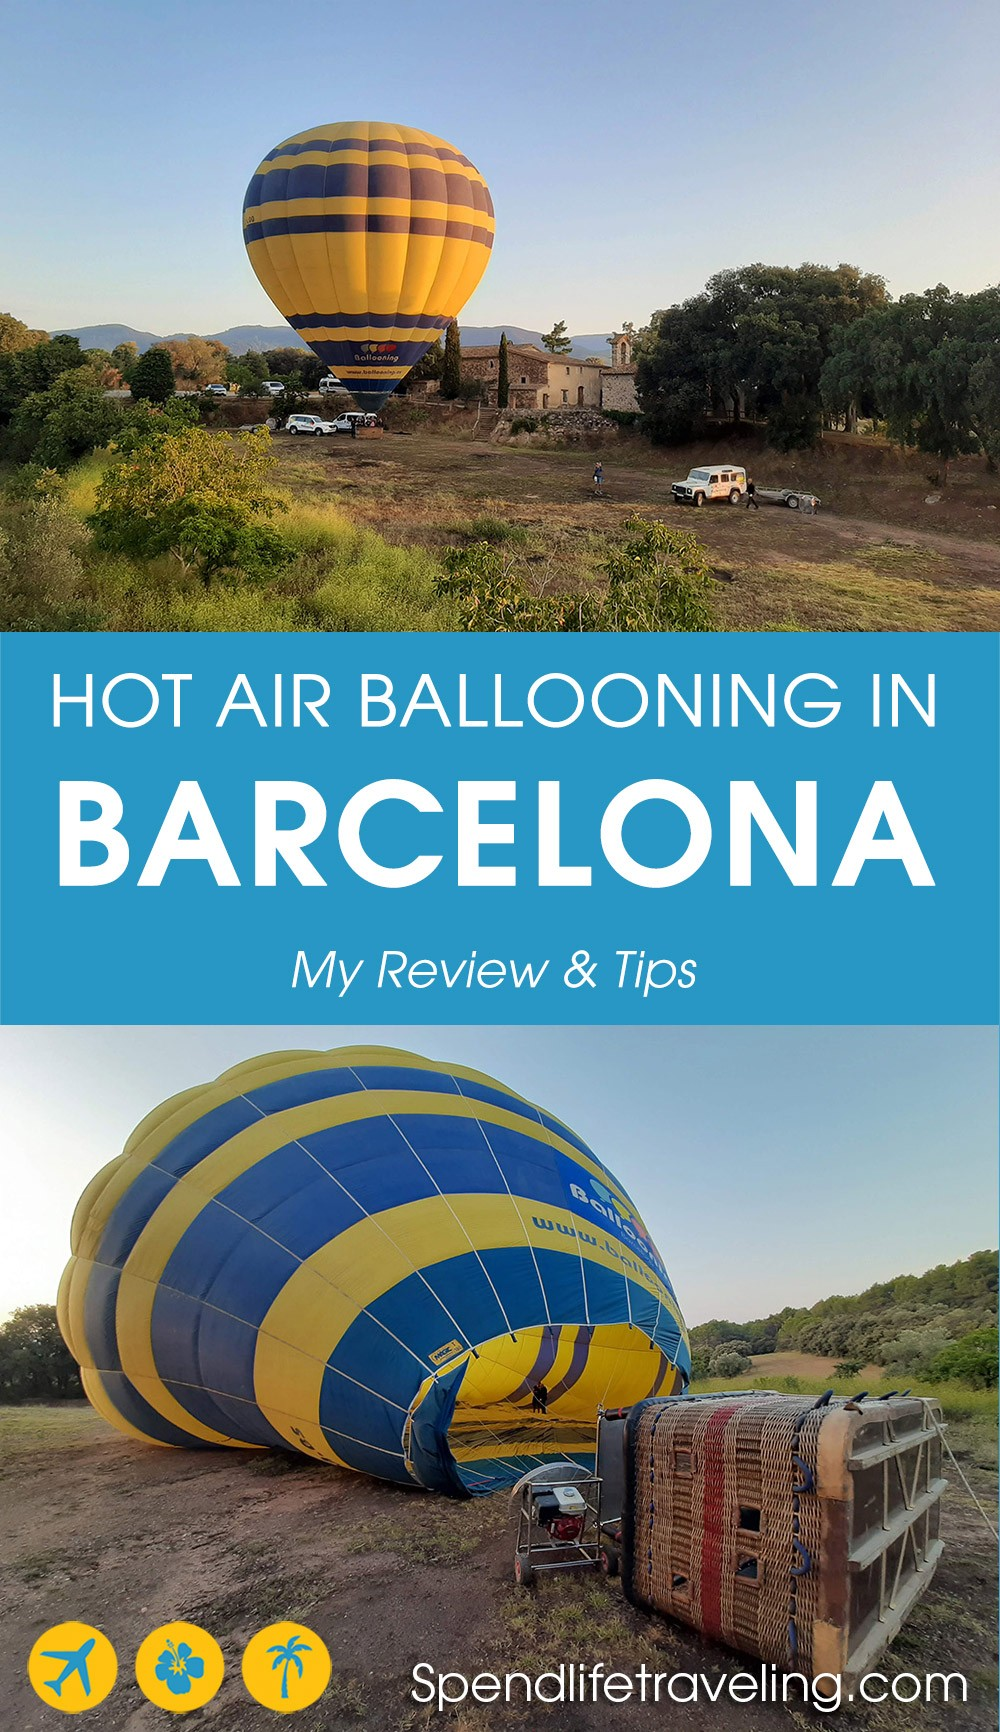 My review of a hot air balloon ride over the countryside outside of Barcelona, Spain